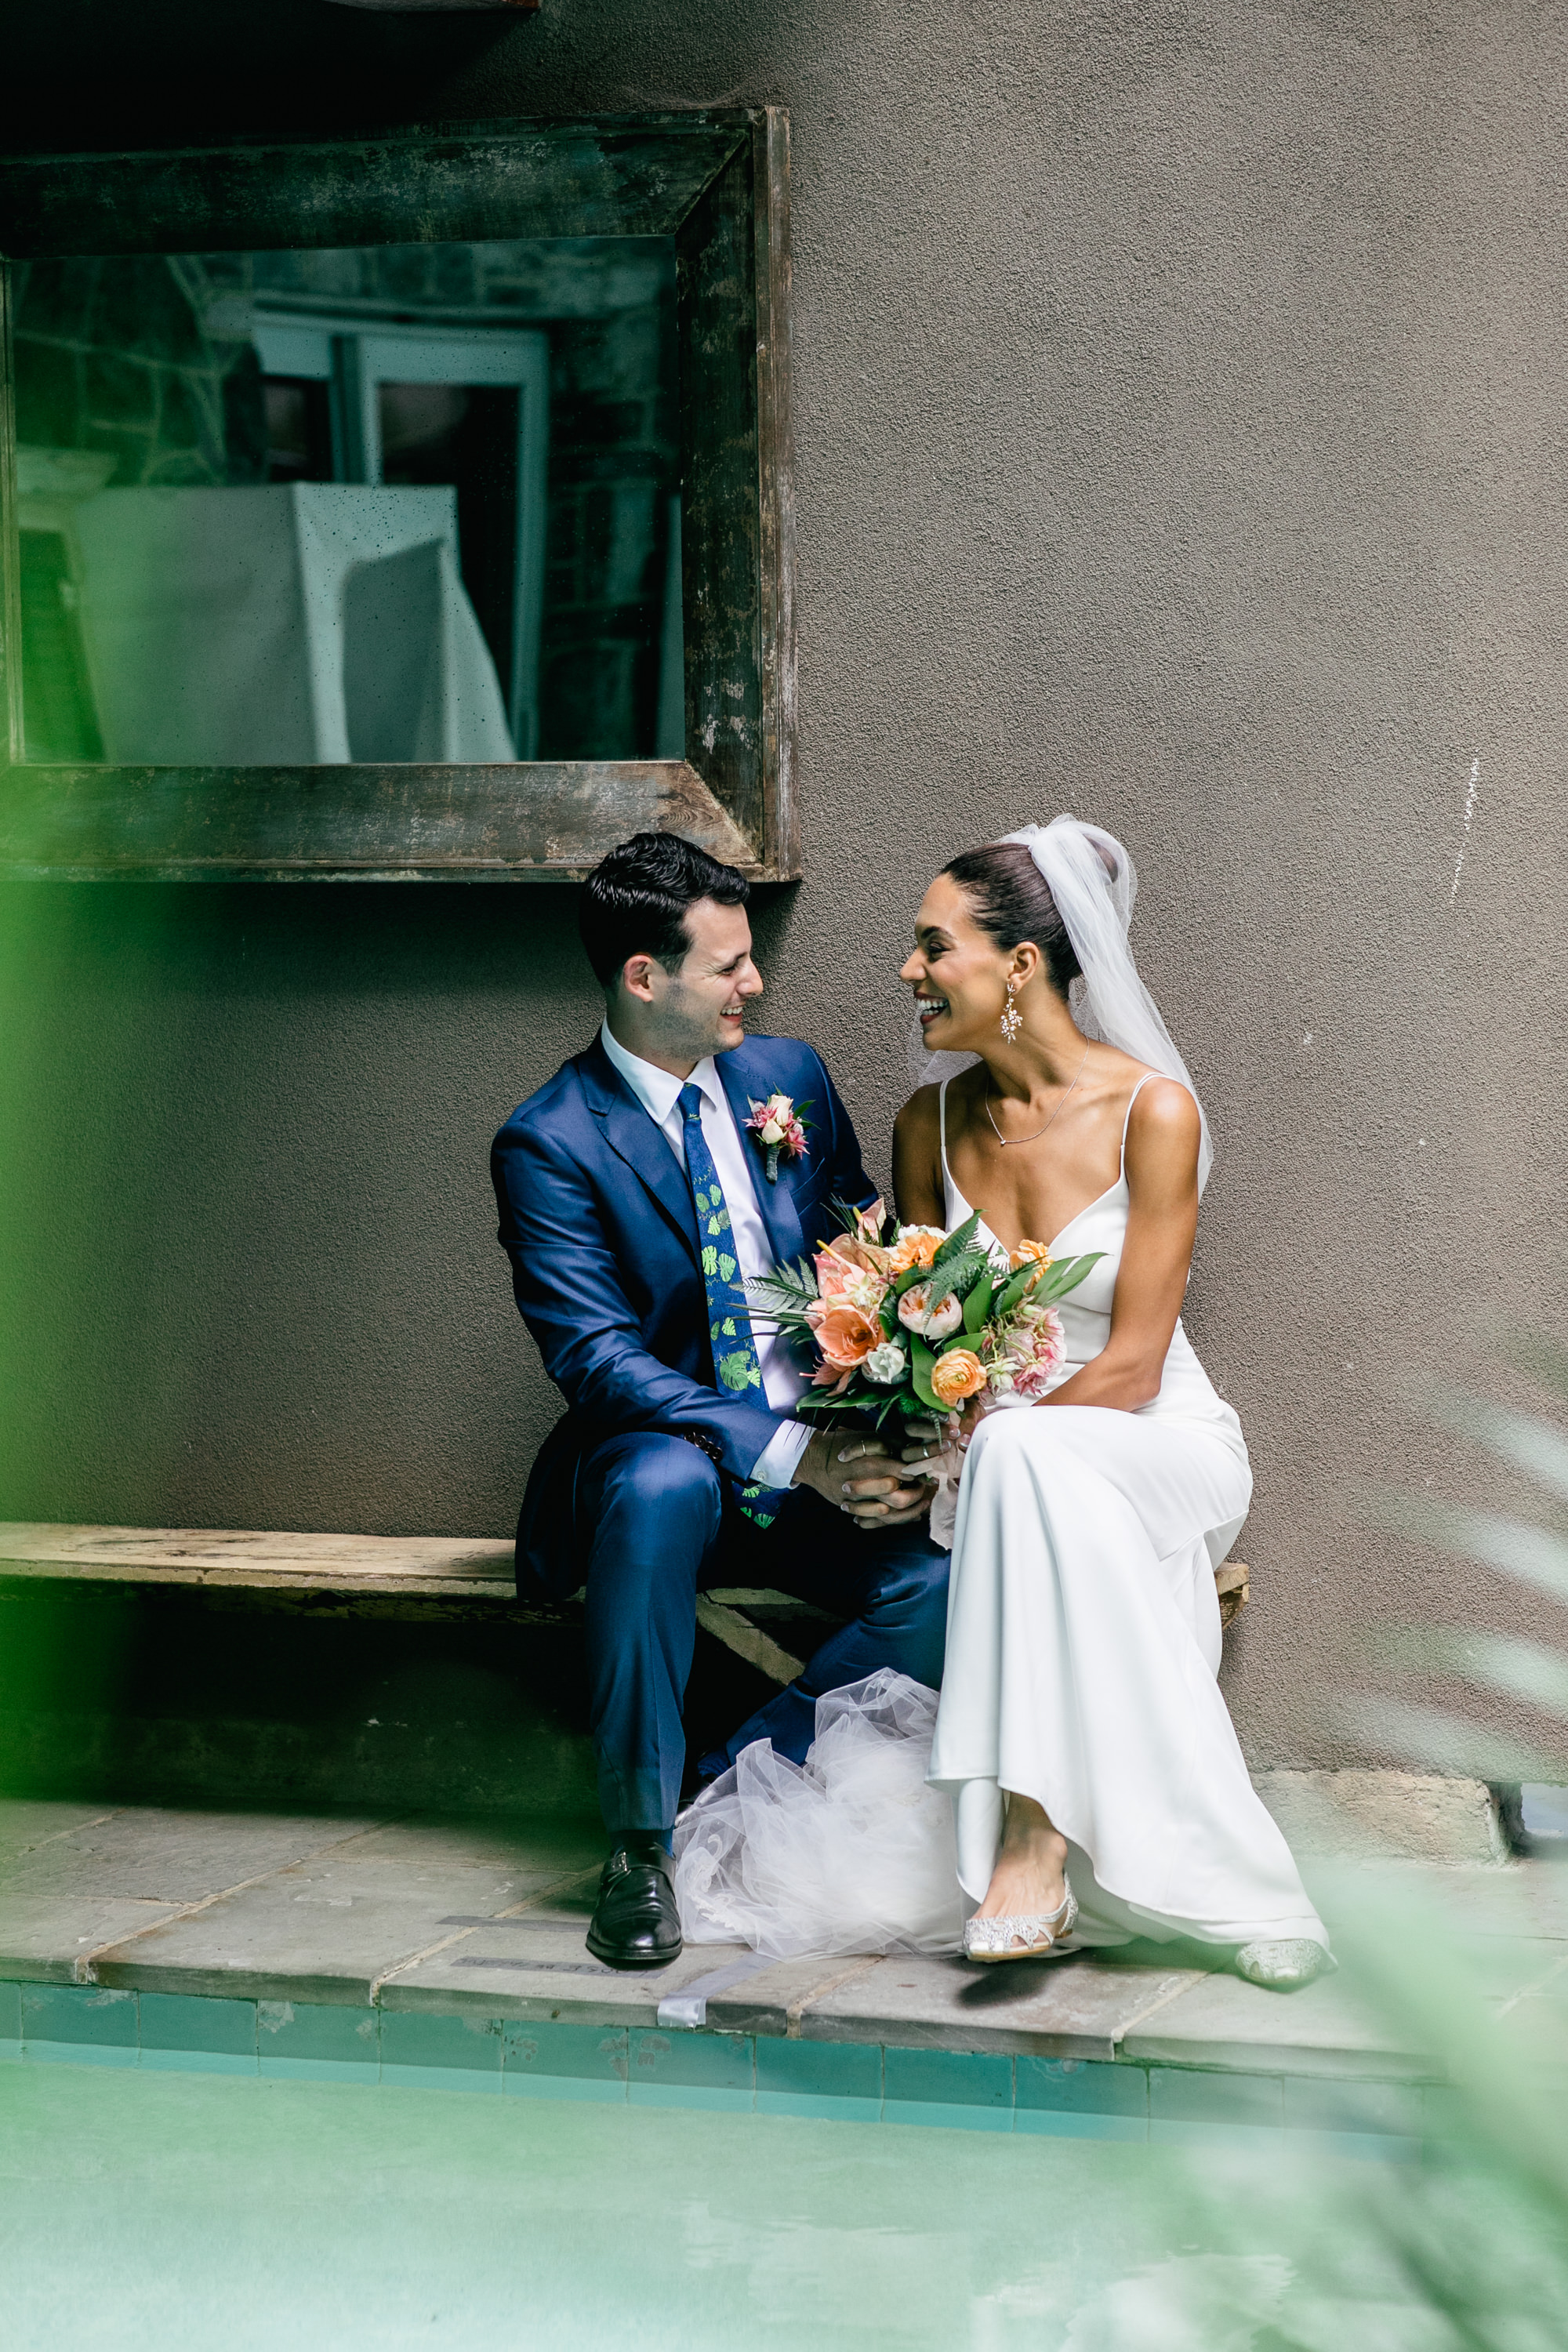 photography-wedding-weddings-natural-candid-dock 5 dc-washington dc-philadelphia-mixed race-editorial-modern-fine-art-031.JPG